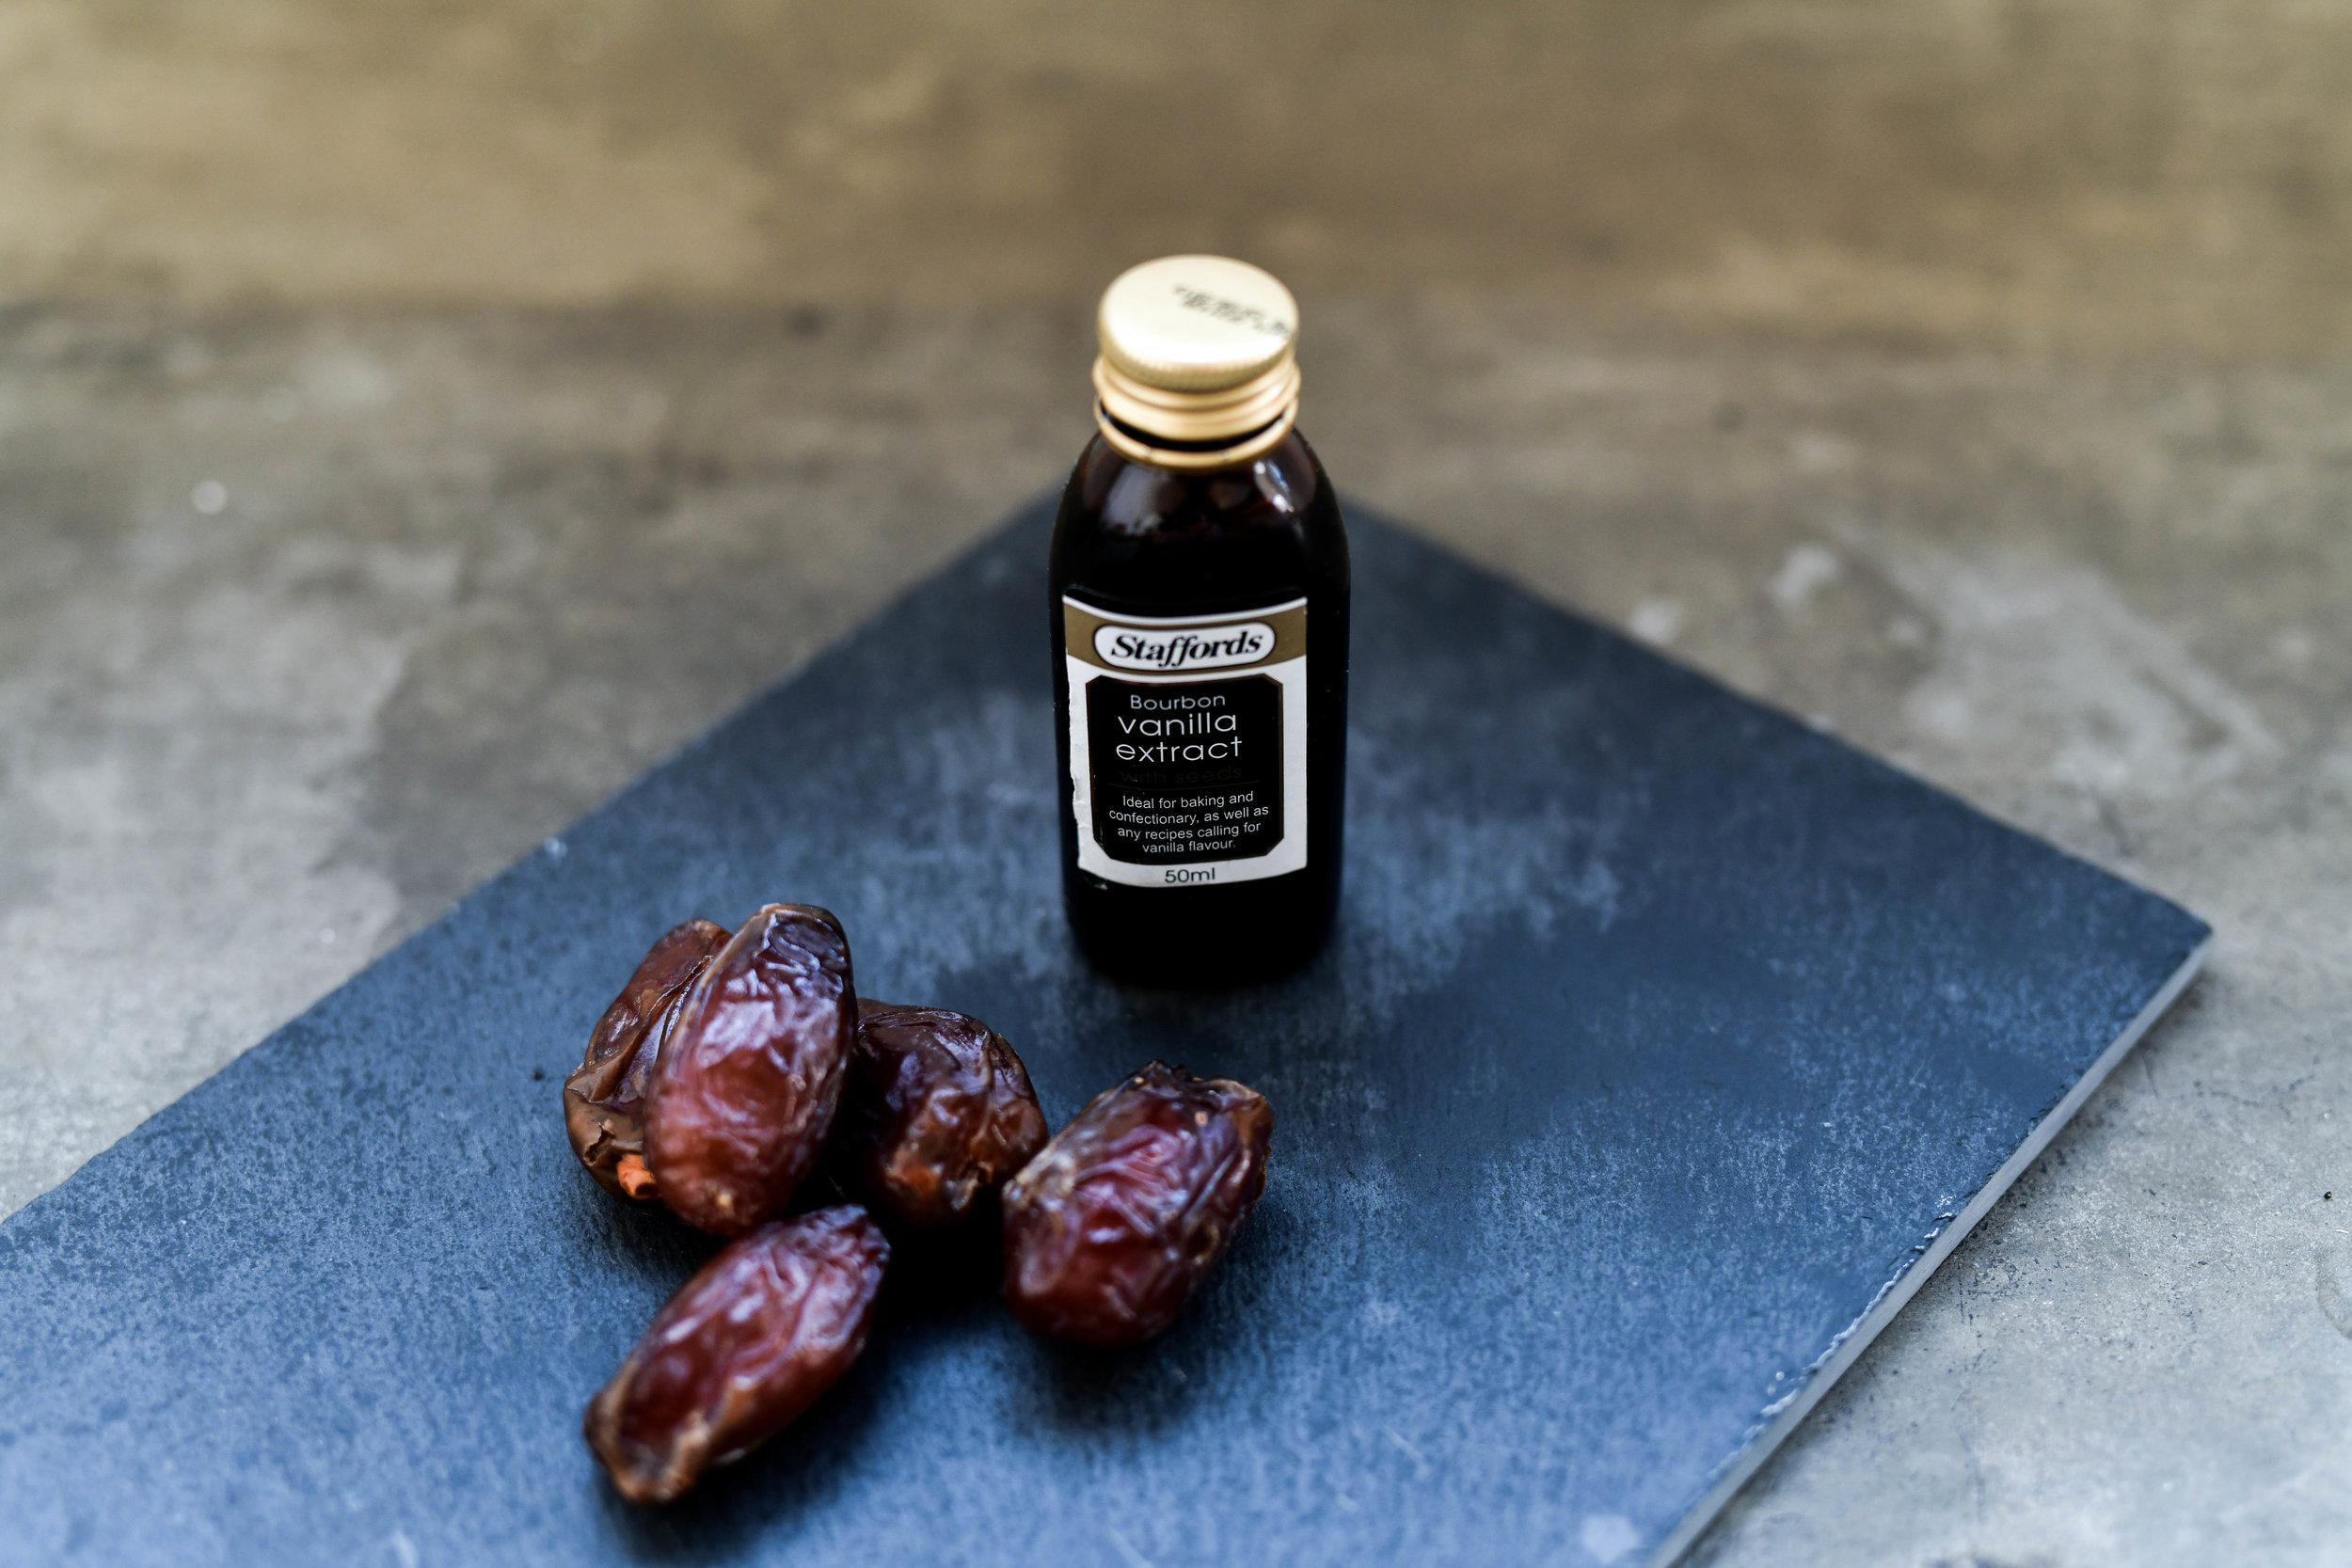 Flavour - 2 Drops Vanilla2 Pitted Dates2 Shakes Mixed Spice1 Tsp Hemp Protein1/2 Tsp Maca Powder